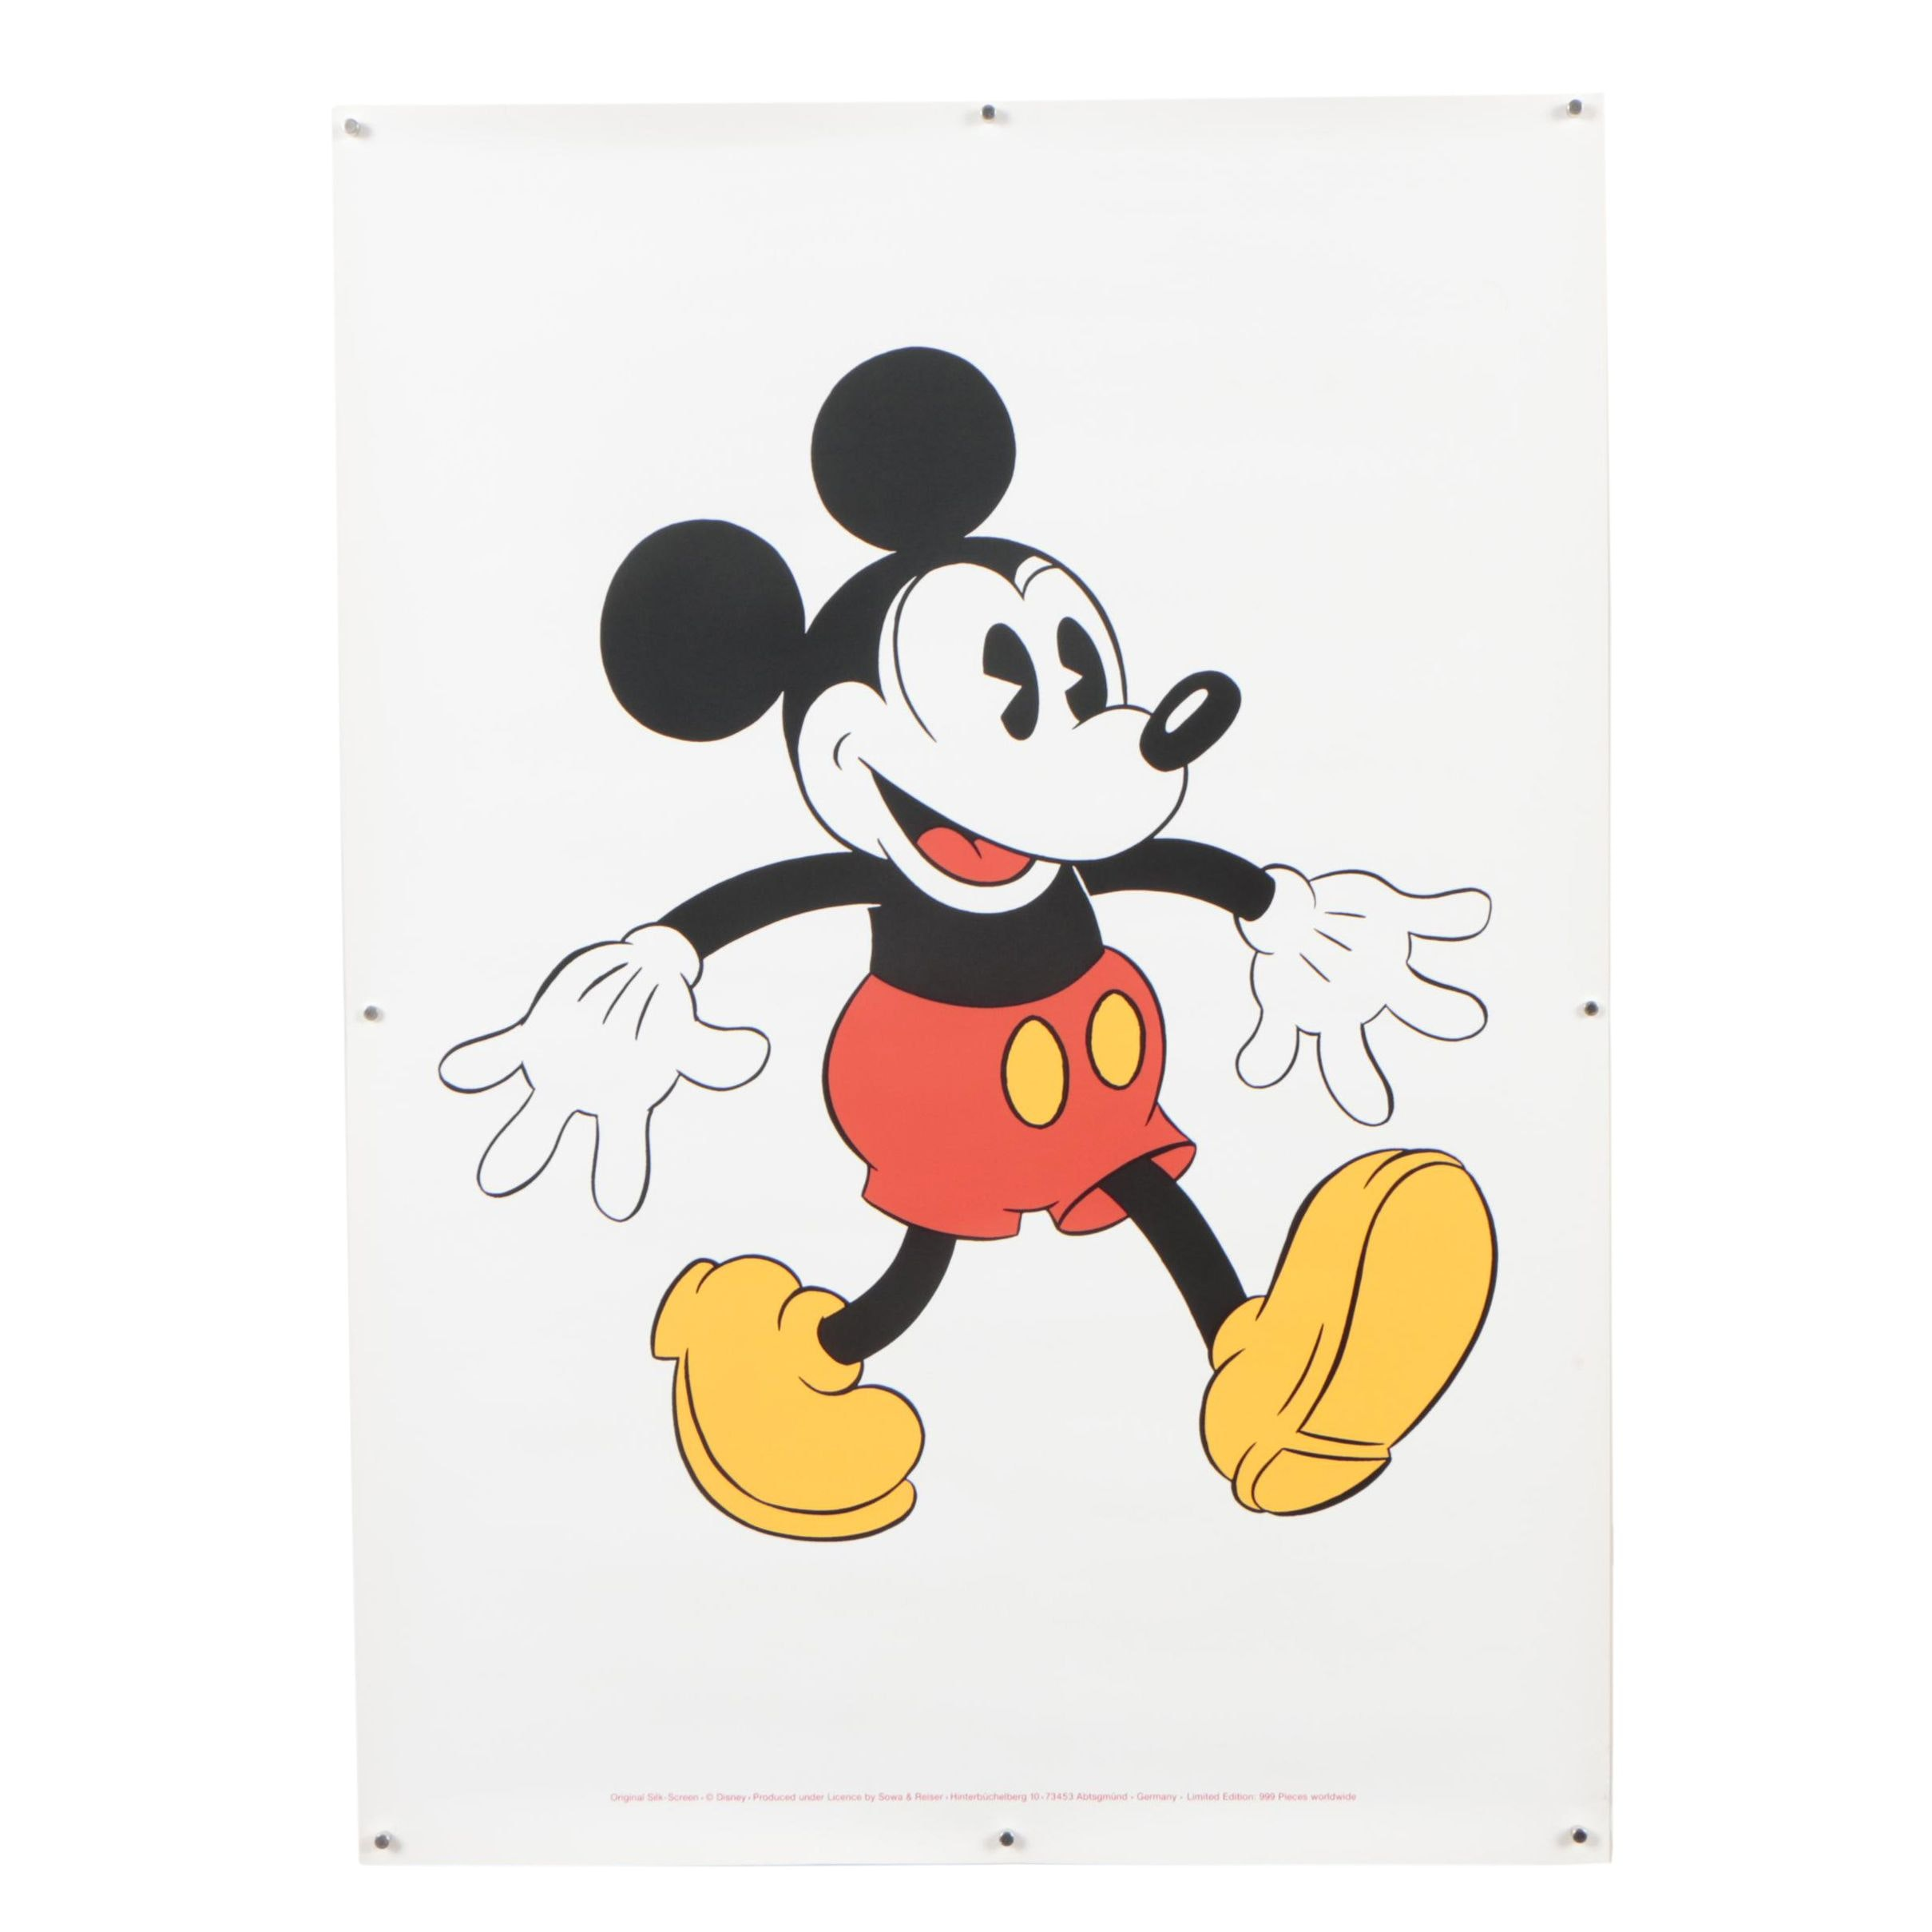 Sowa and Reiser Serigraph of Mickey Mouse